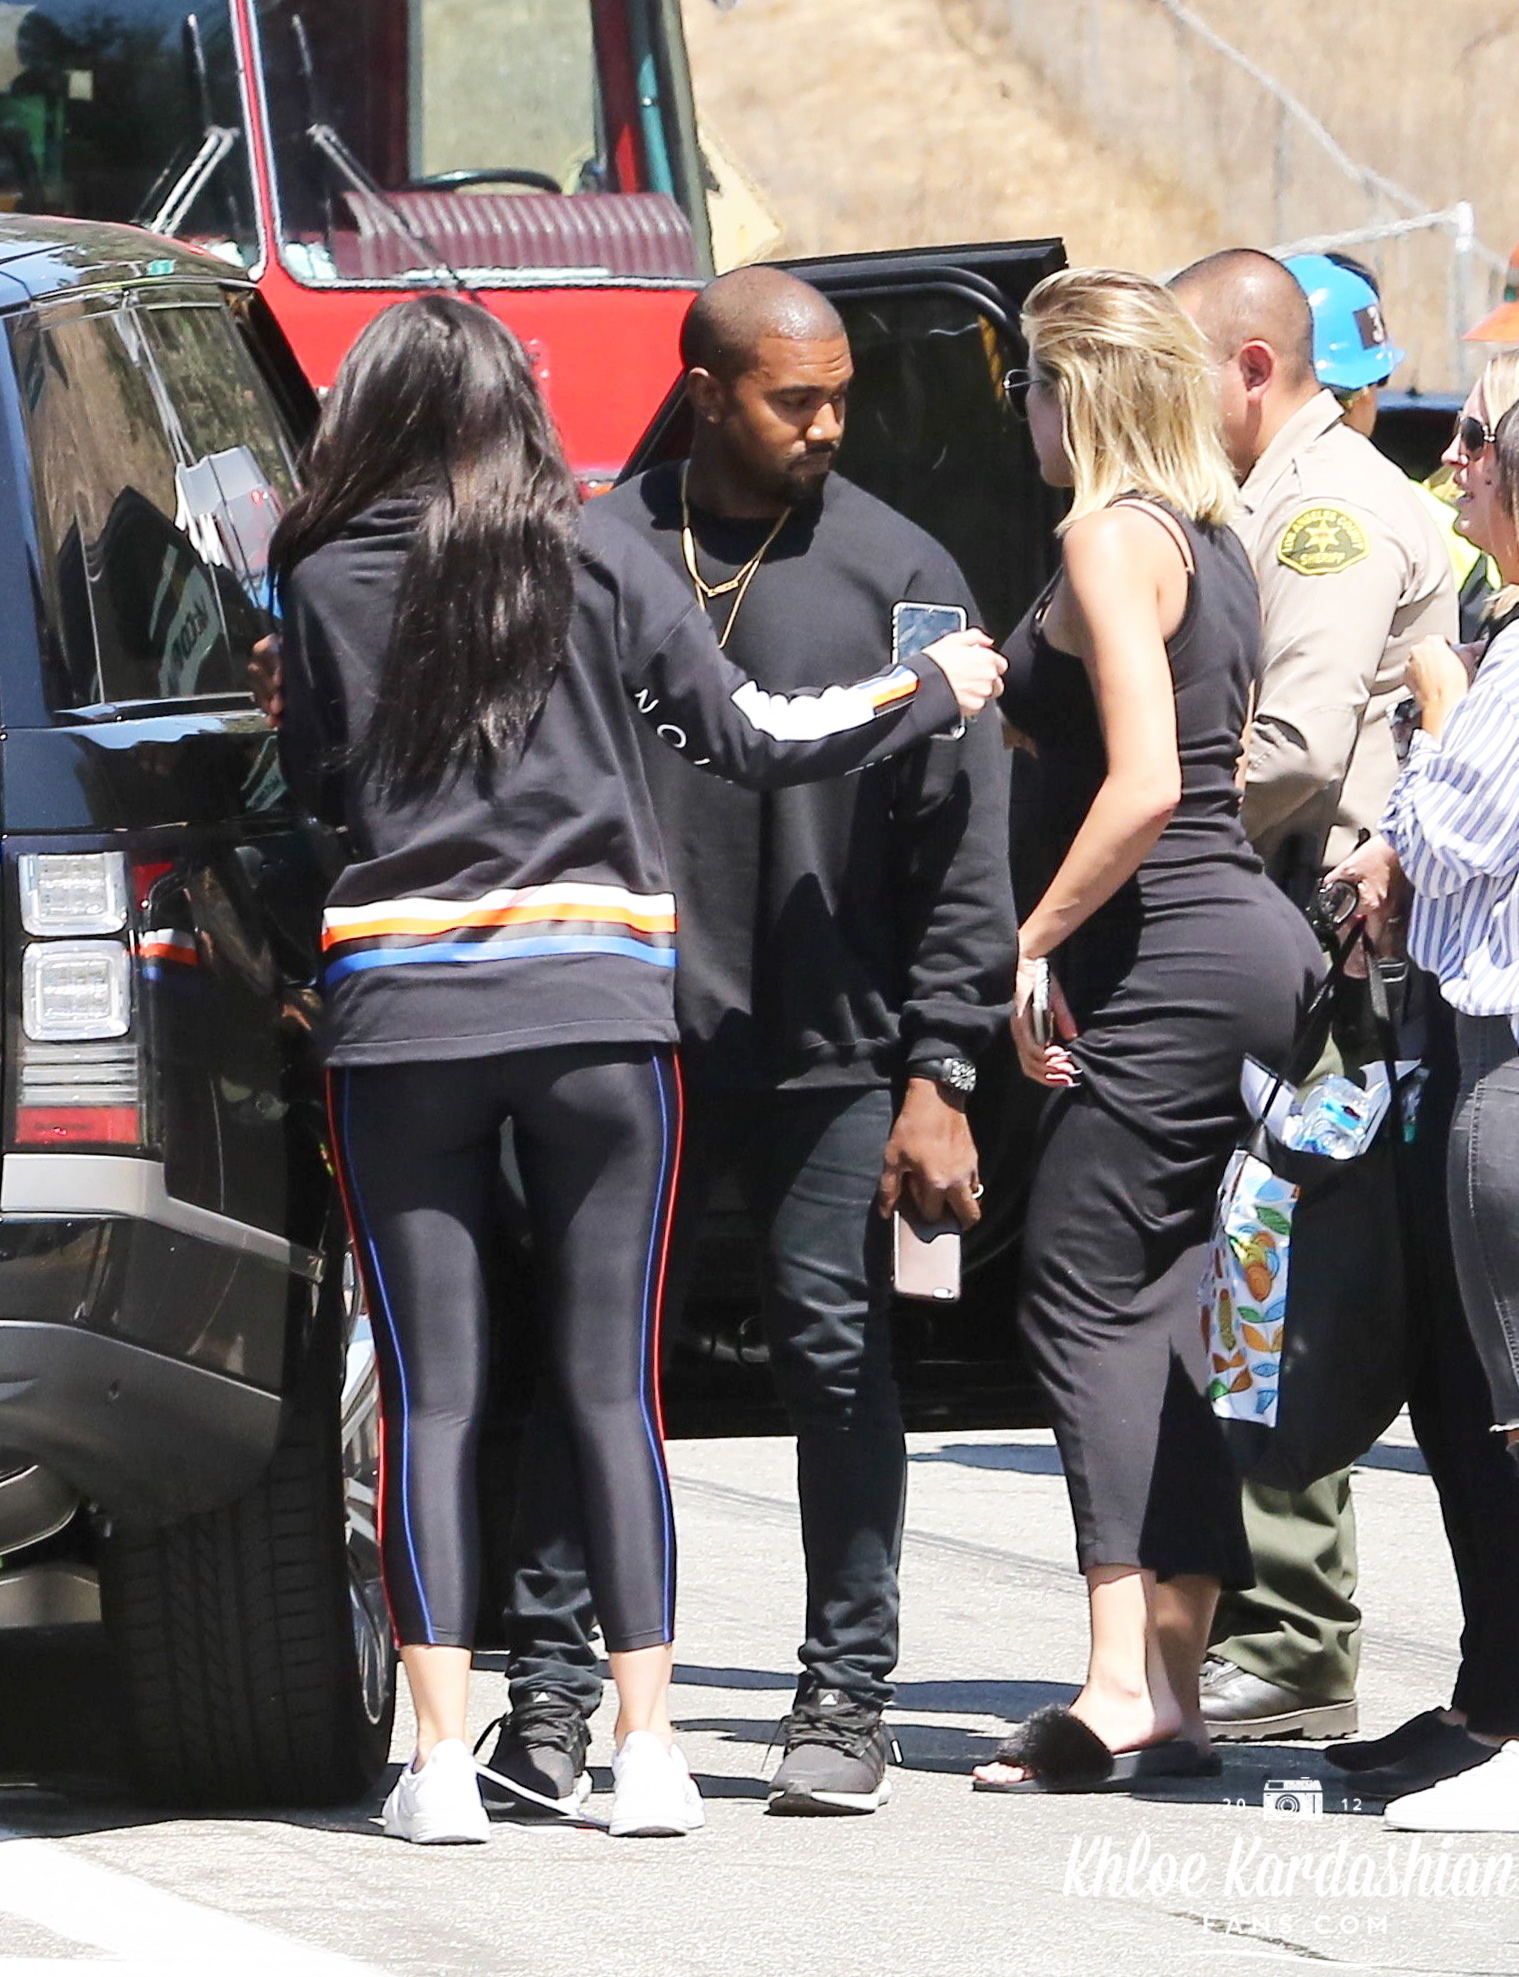 Kylie Jenner and Khloe Kardashian Rush to Kris Jenner's Side After Crash